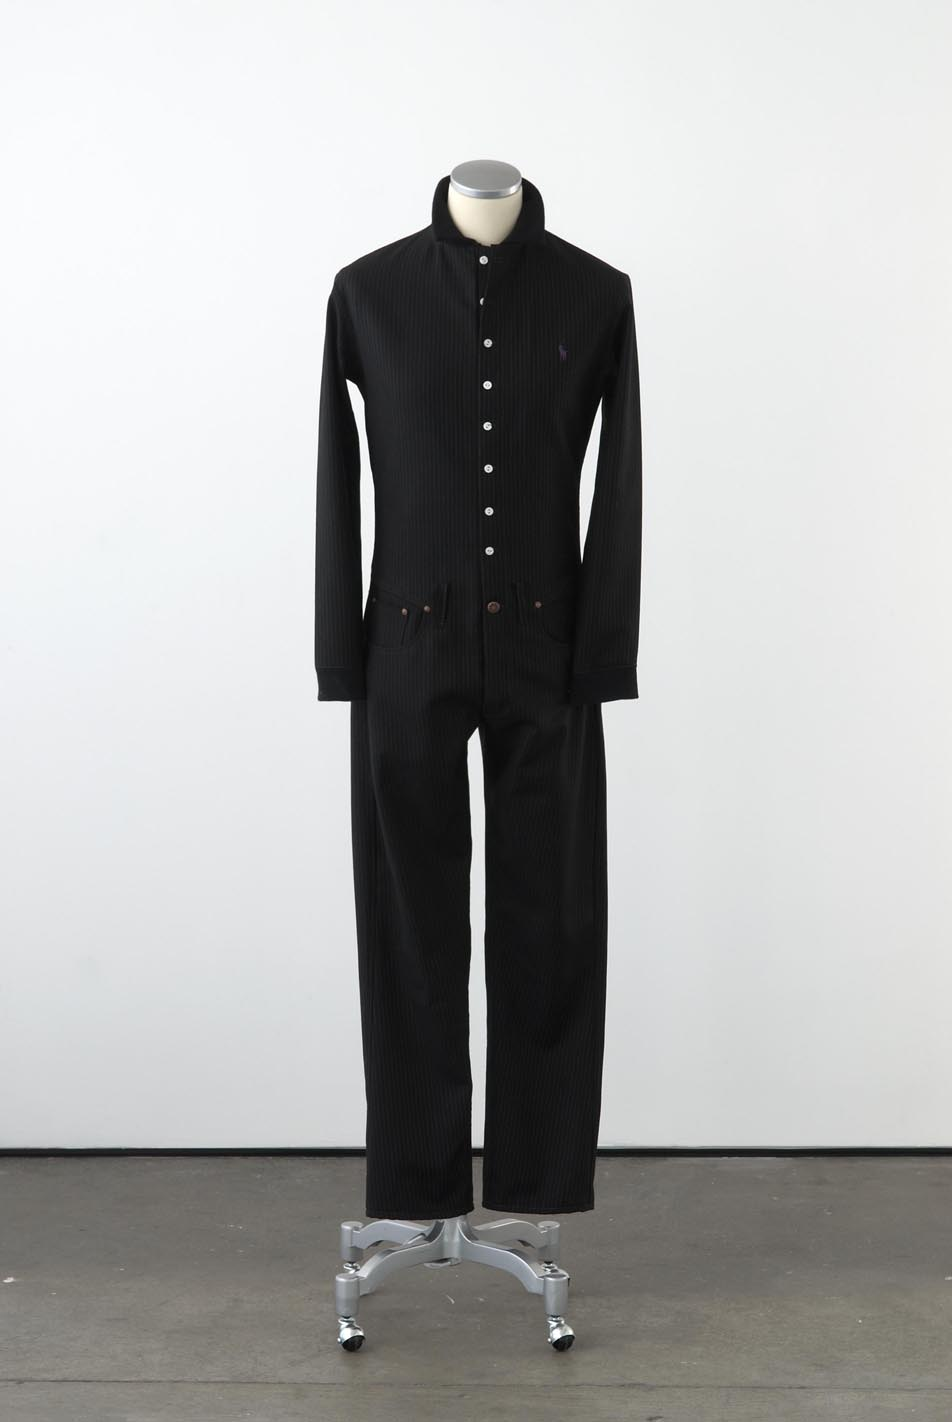 Matthew Darbyshire Standardised Production Clothing, Version 9 2009 Woollen pinstripe, cotton jersey & fittings on mannequin 185 x 45 x 34 cm